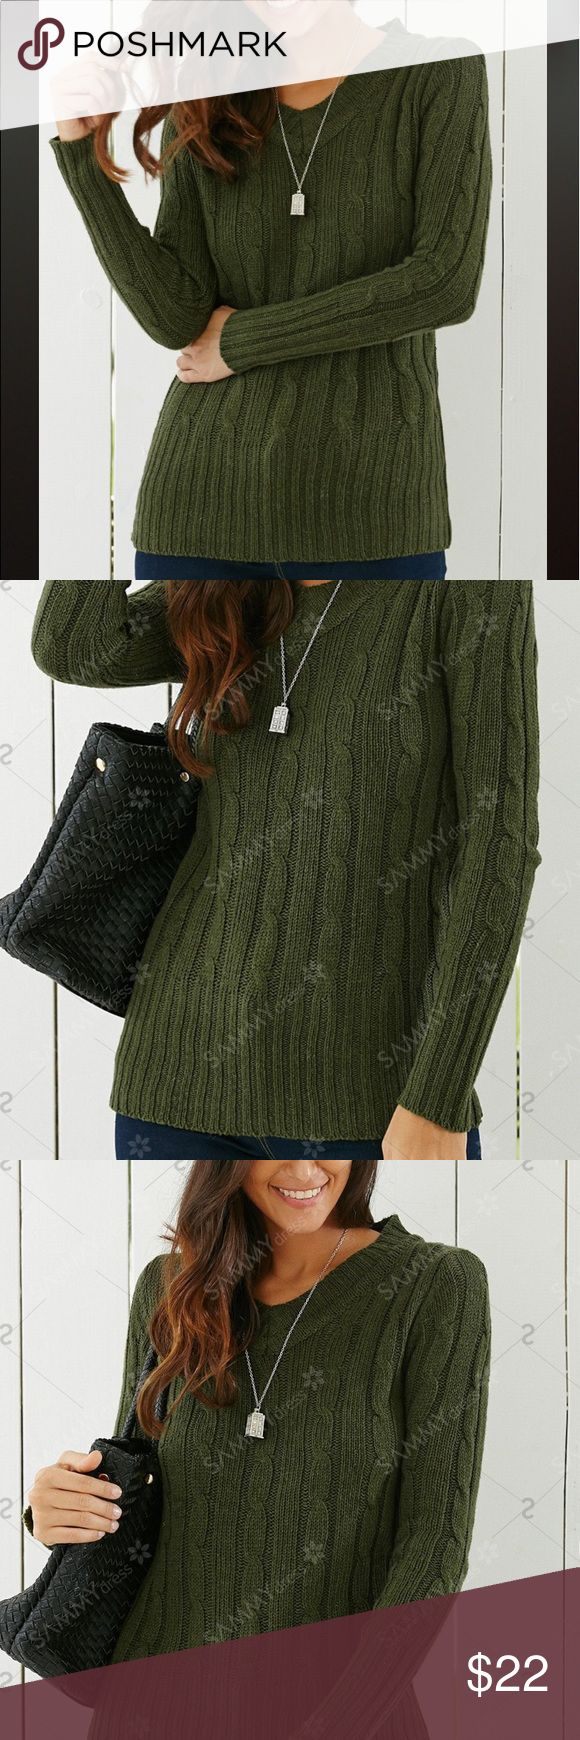 Green Cable Knit Sweater Amazing olive color. Great for fall and winter. Brand New in package. Great with leggings and skinny jeans. Casual or dressed down. Says OS but fits small and medium better. Sweaters